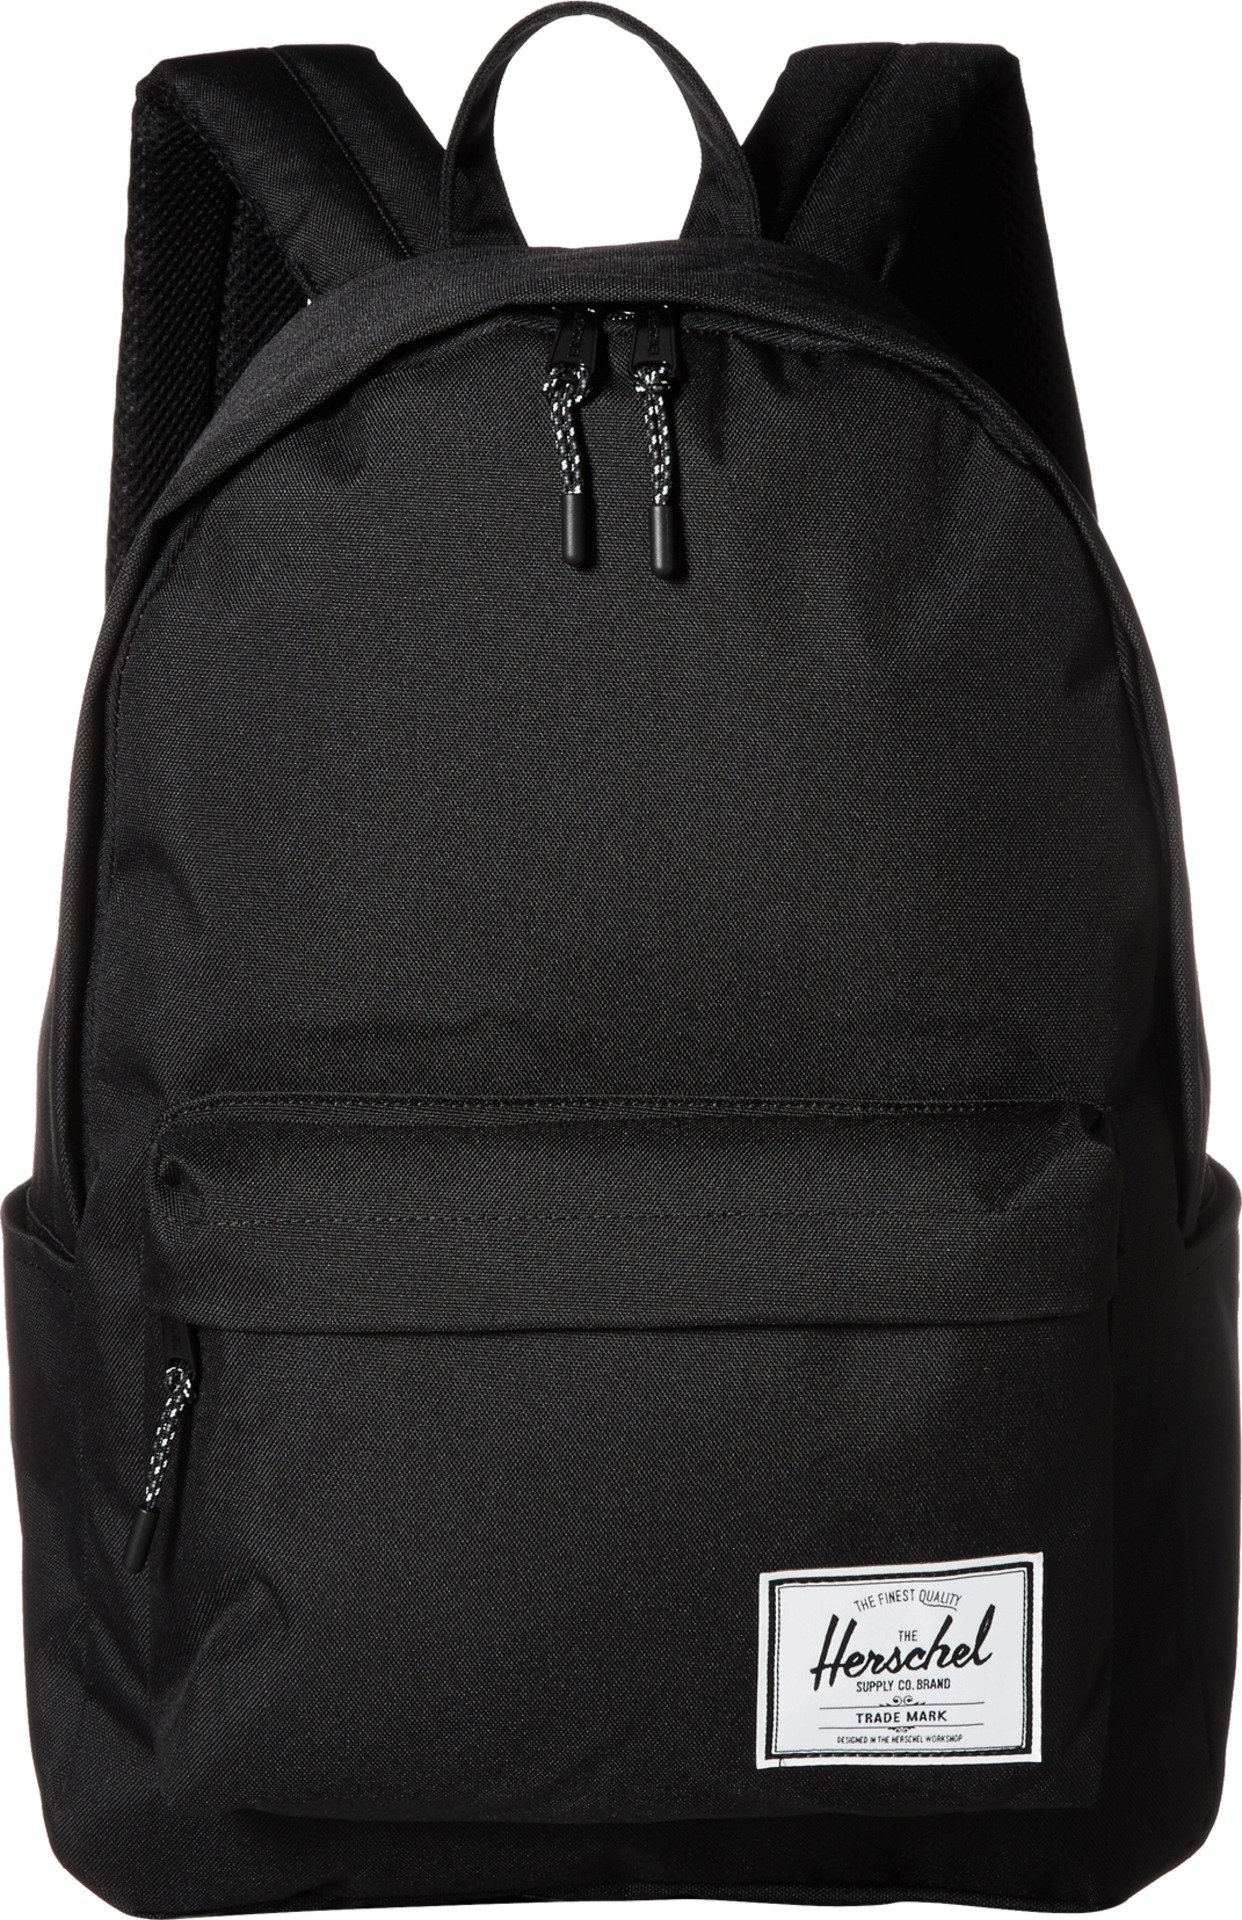 Herschel Classic X-Large Backpack, Black, One Size